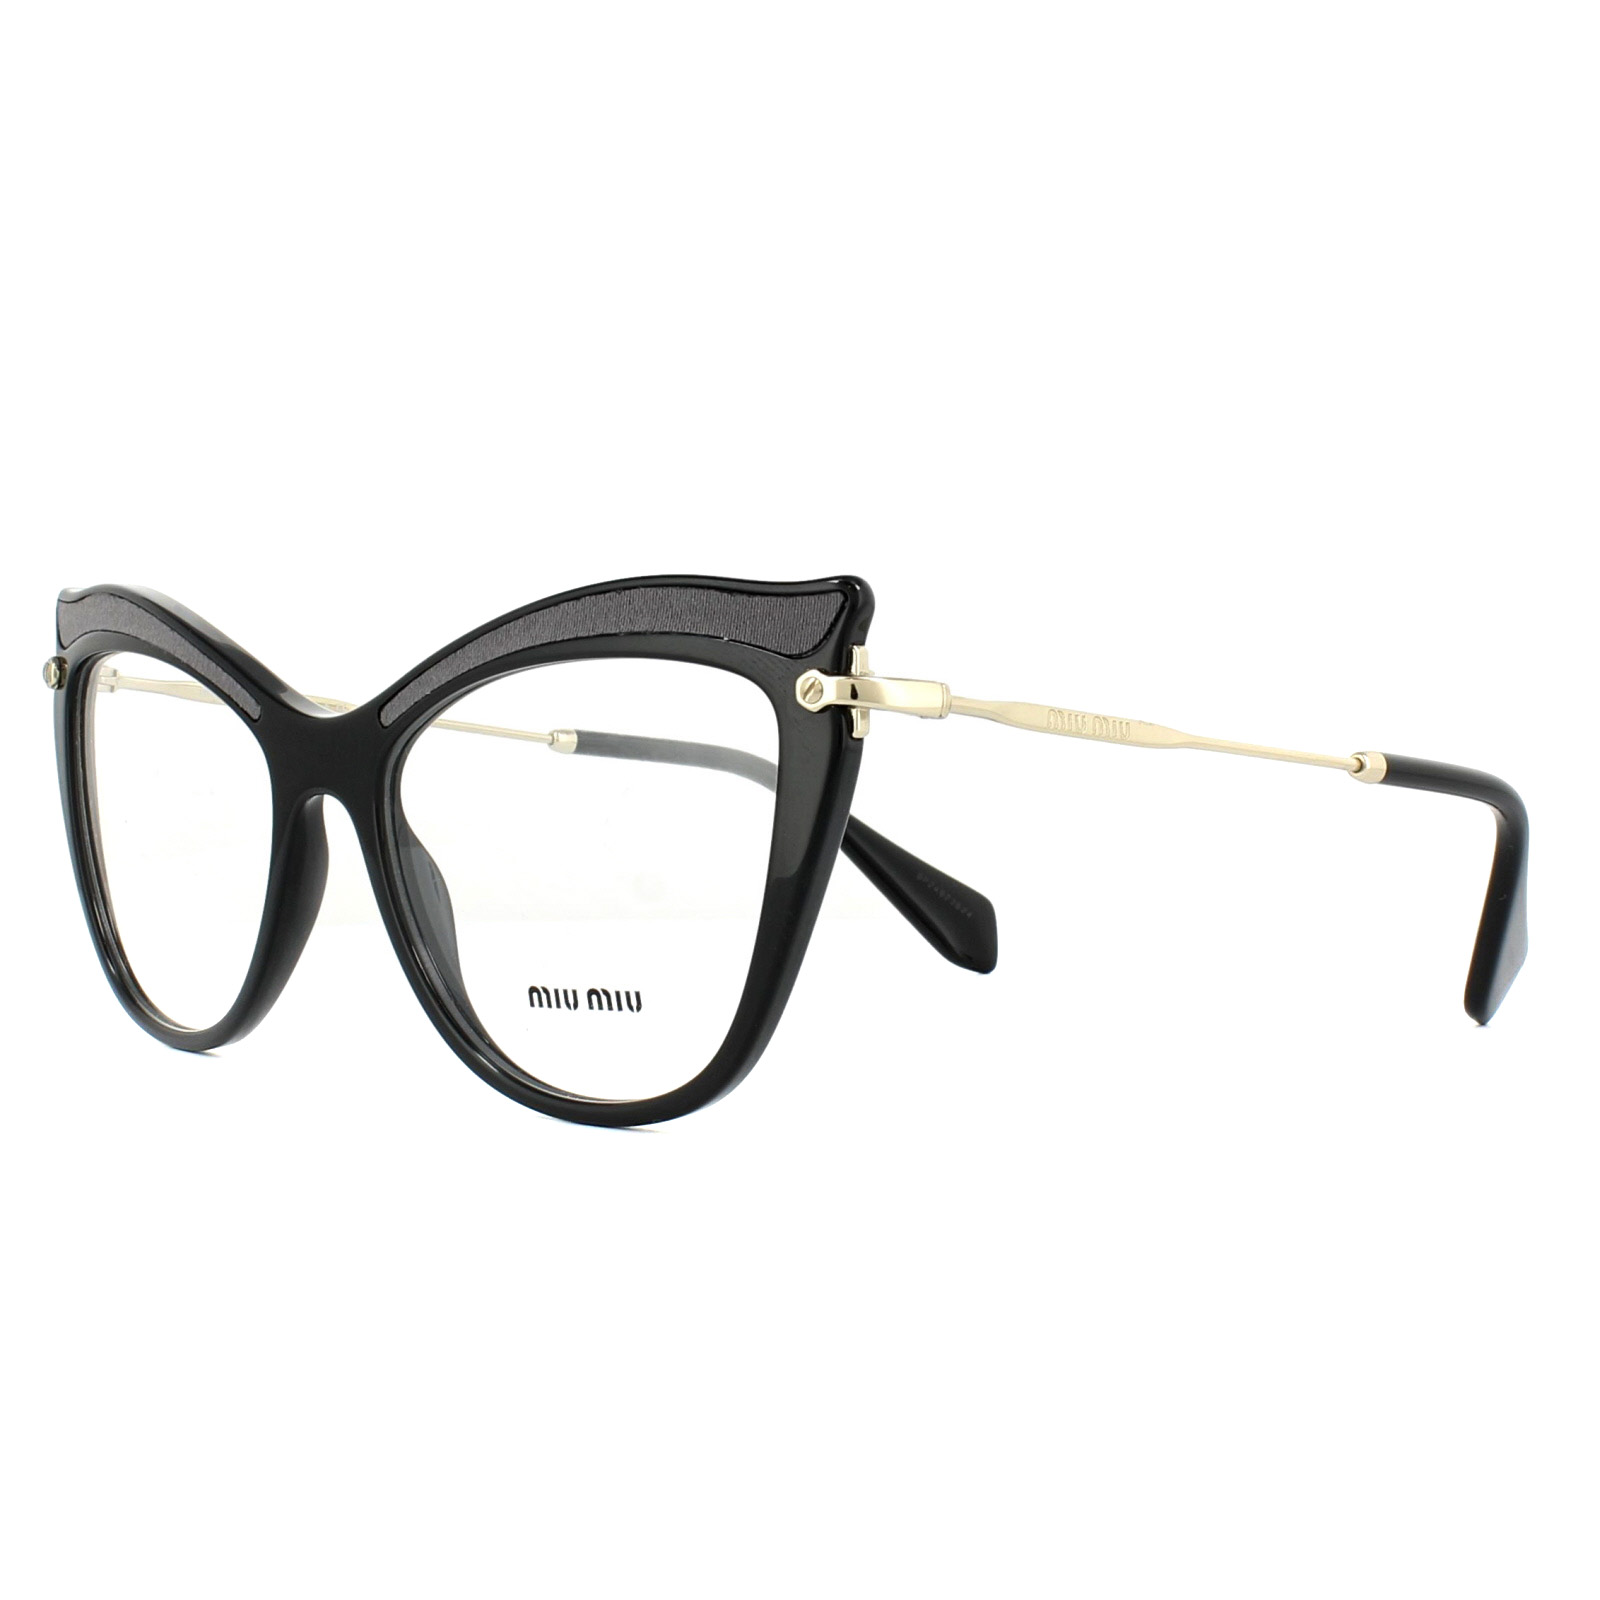 0083935c2915 Miu Miu Glasses Frames MU06PV VIE1O1 Black 51mm Womens 8053672740073 ...